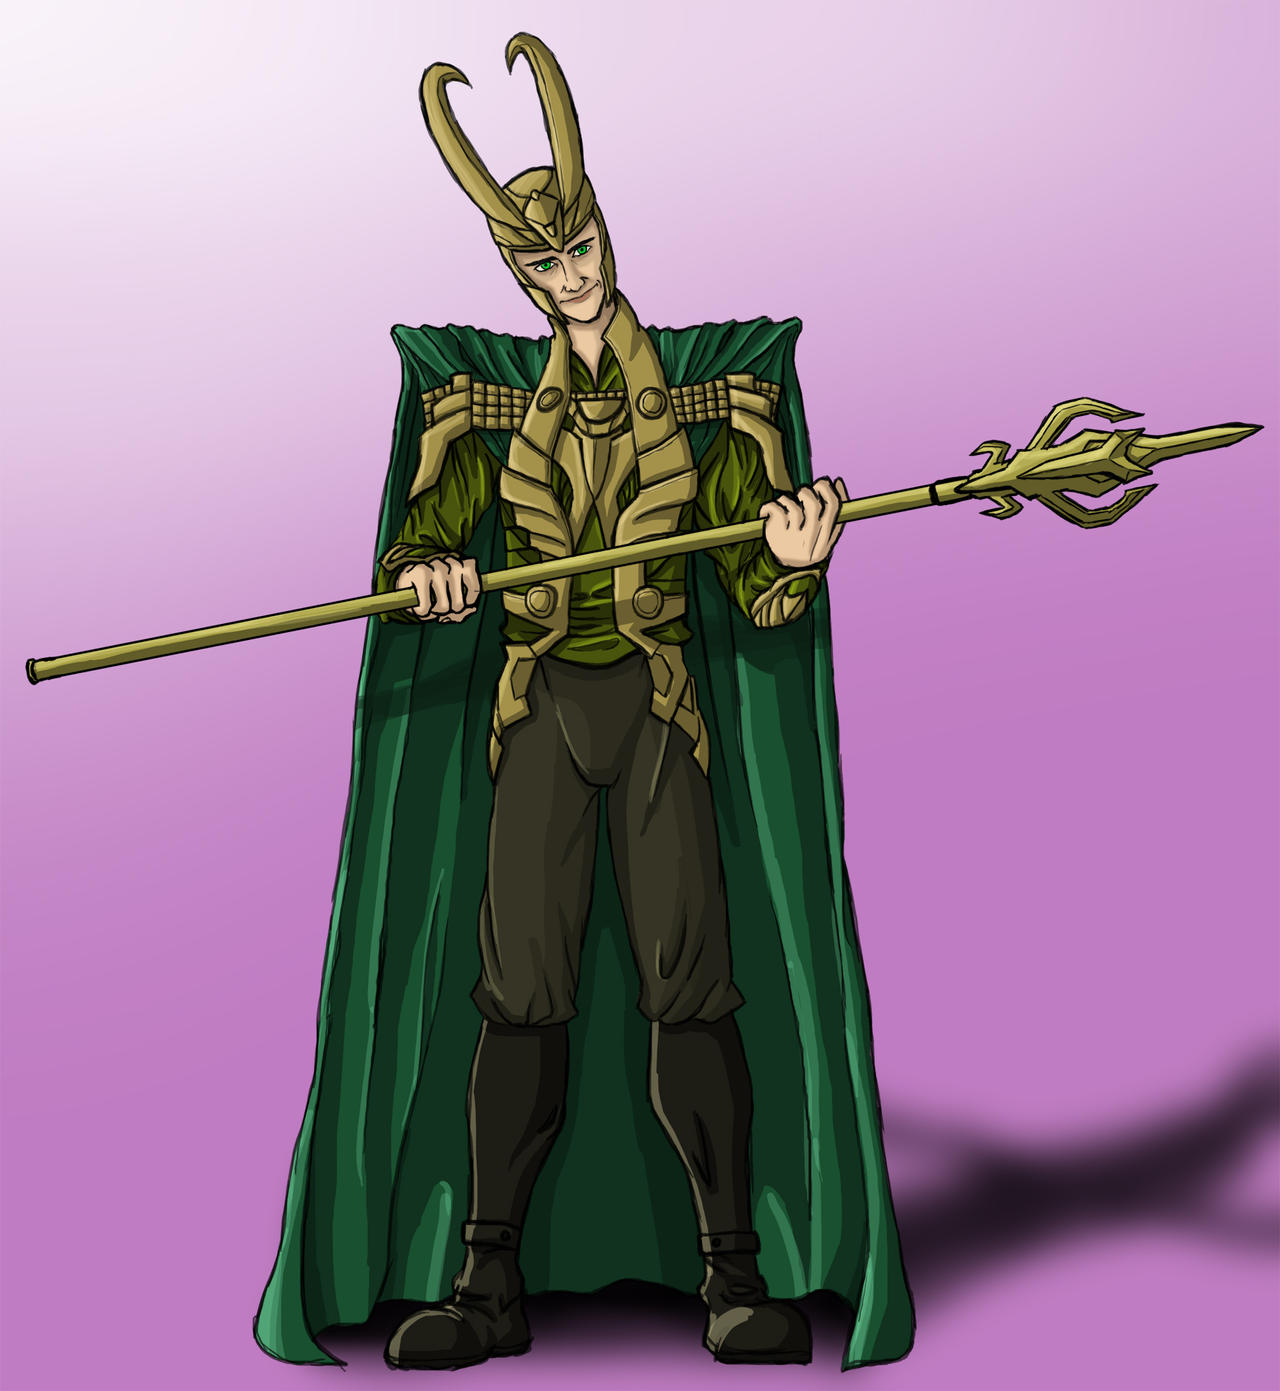 Loki, the God of Mischief by BenSmith128 on DeviantArt